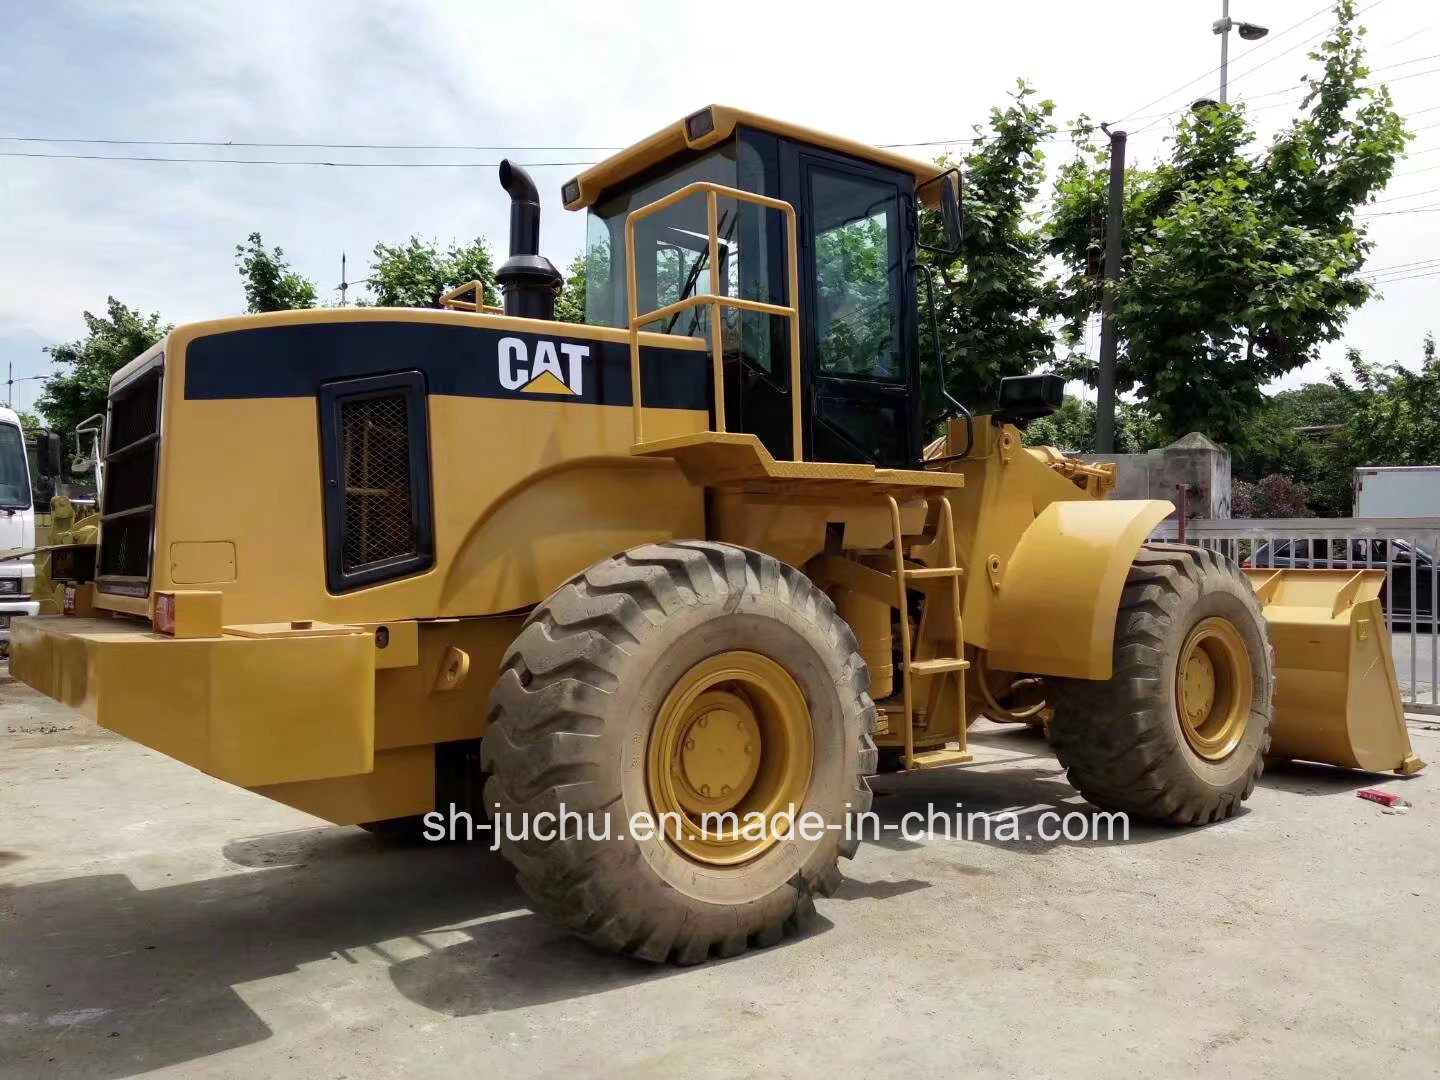 Used Cat 966g Wheel Loader /Caterpillar Loader 950g 950e 966h Loader